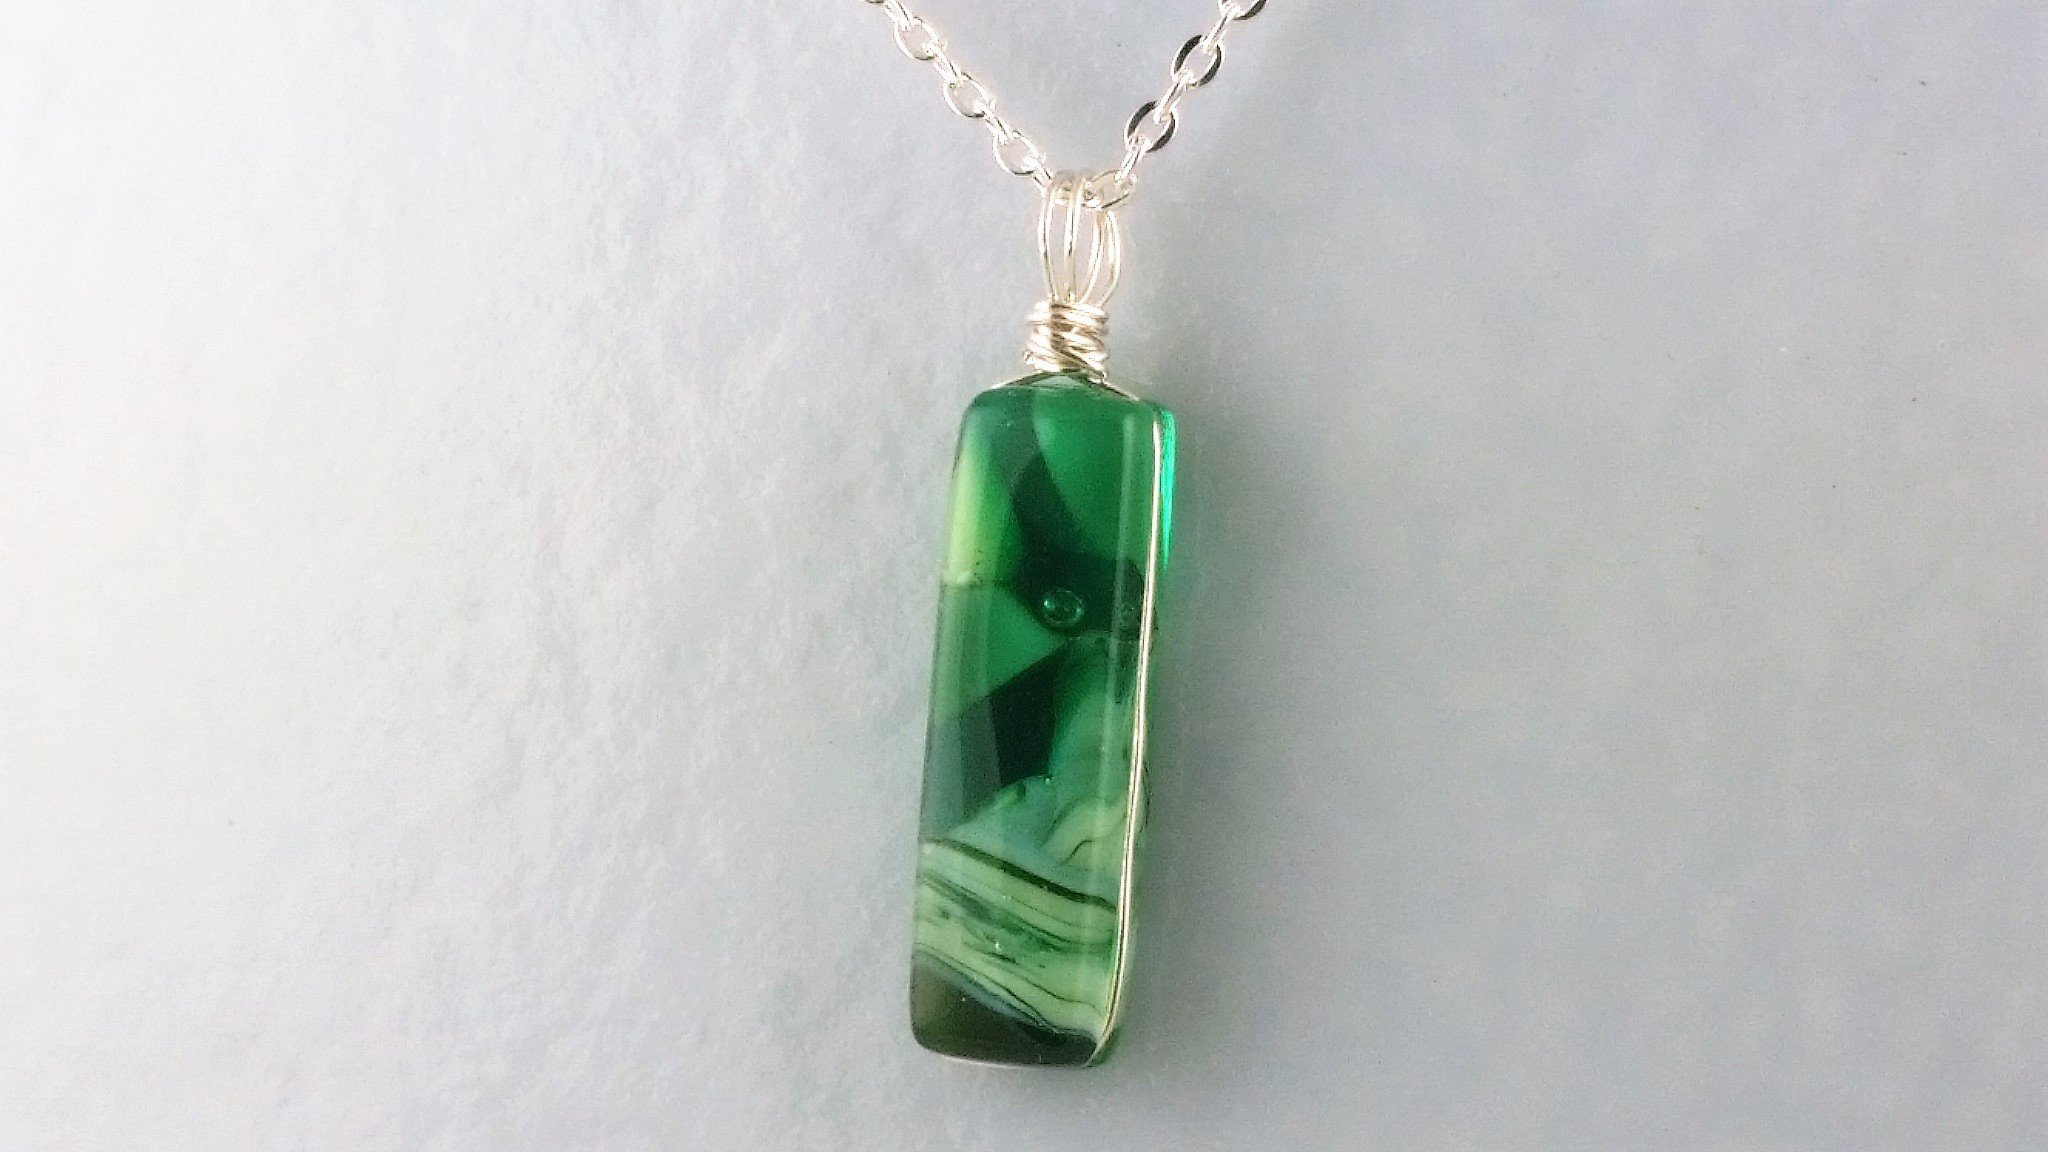 Reversible Glass Pendant by Michelle Copeland at Thistle Glass.com